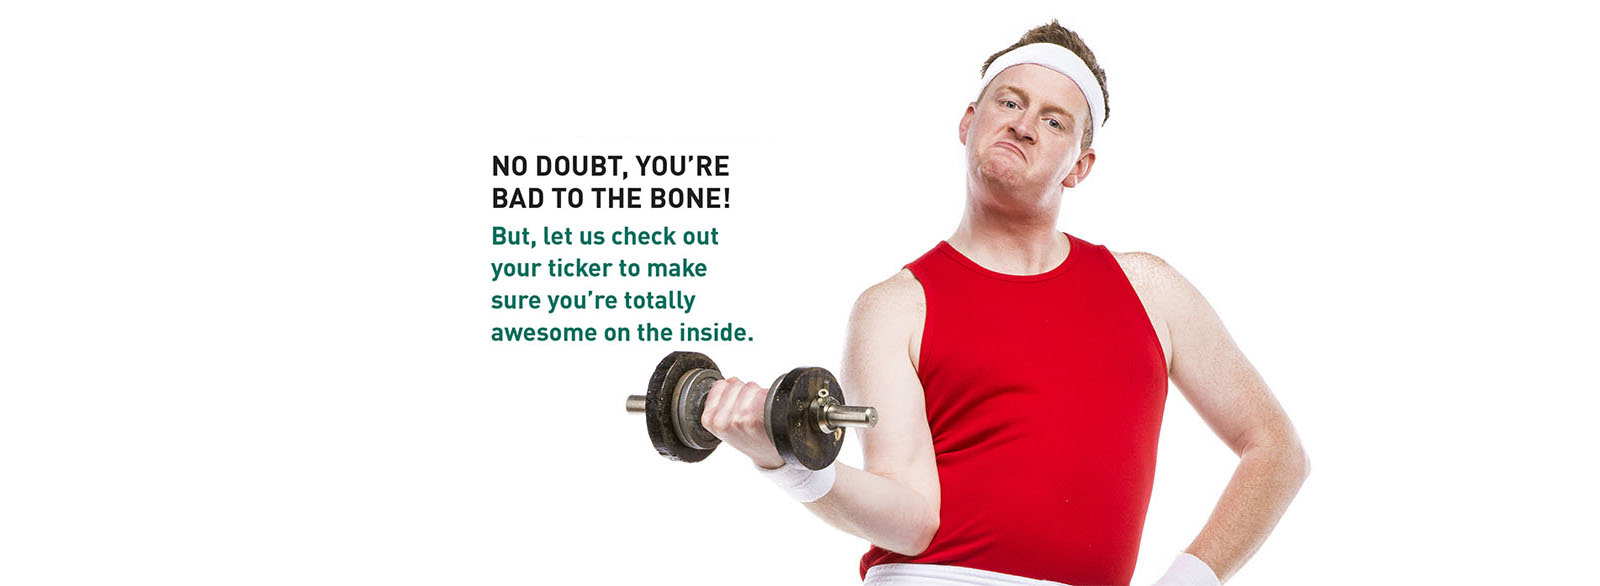 Man in athletic attire lifting a dumbbell.